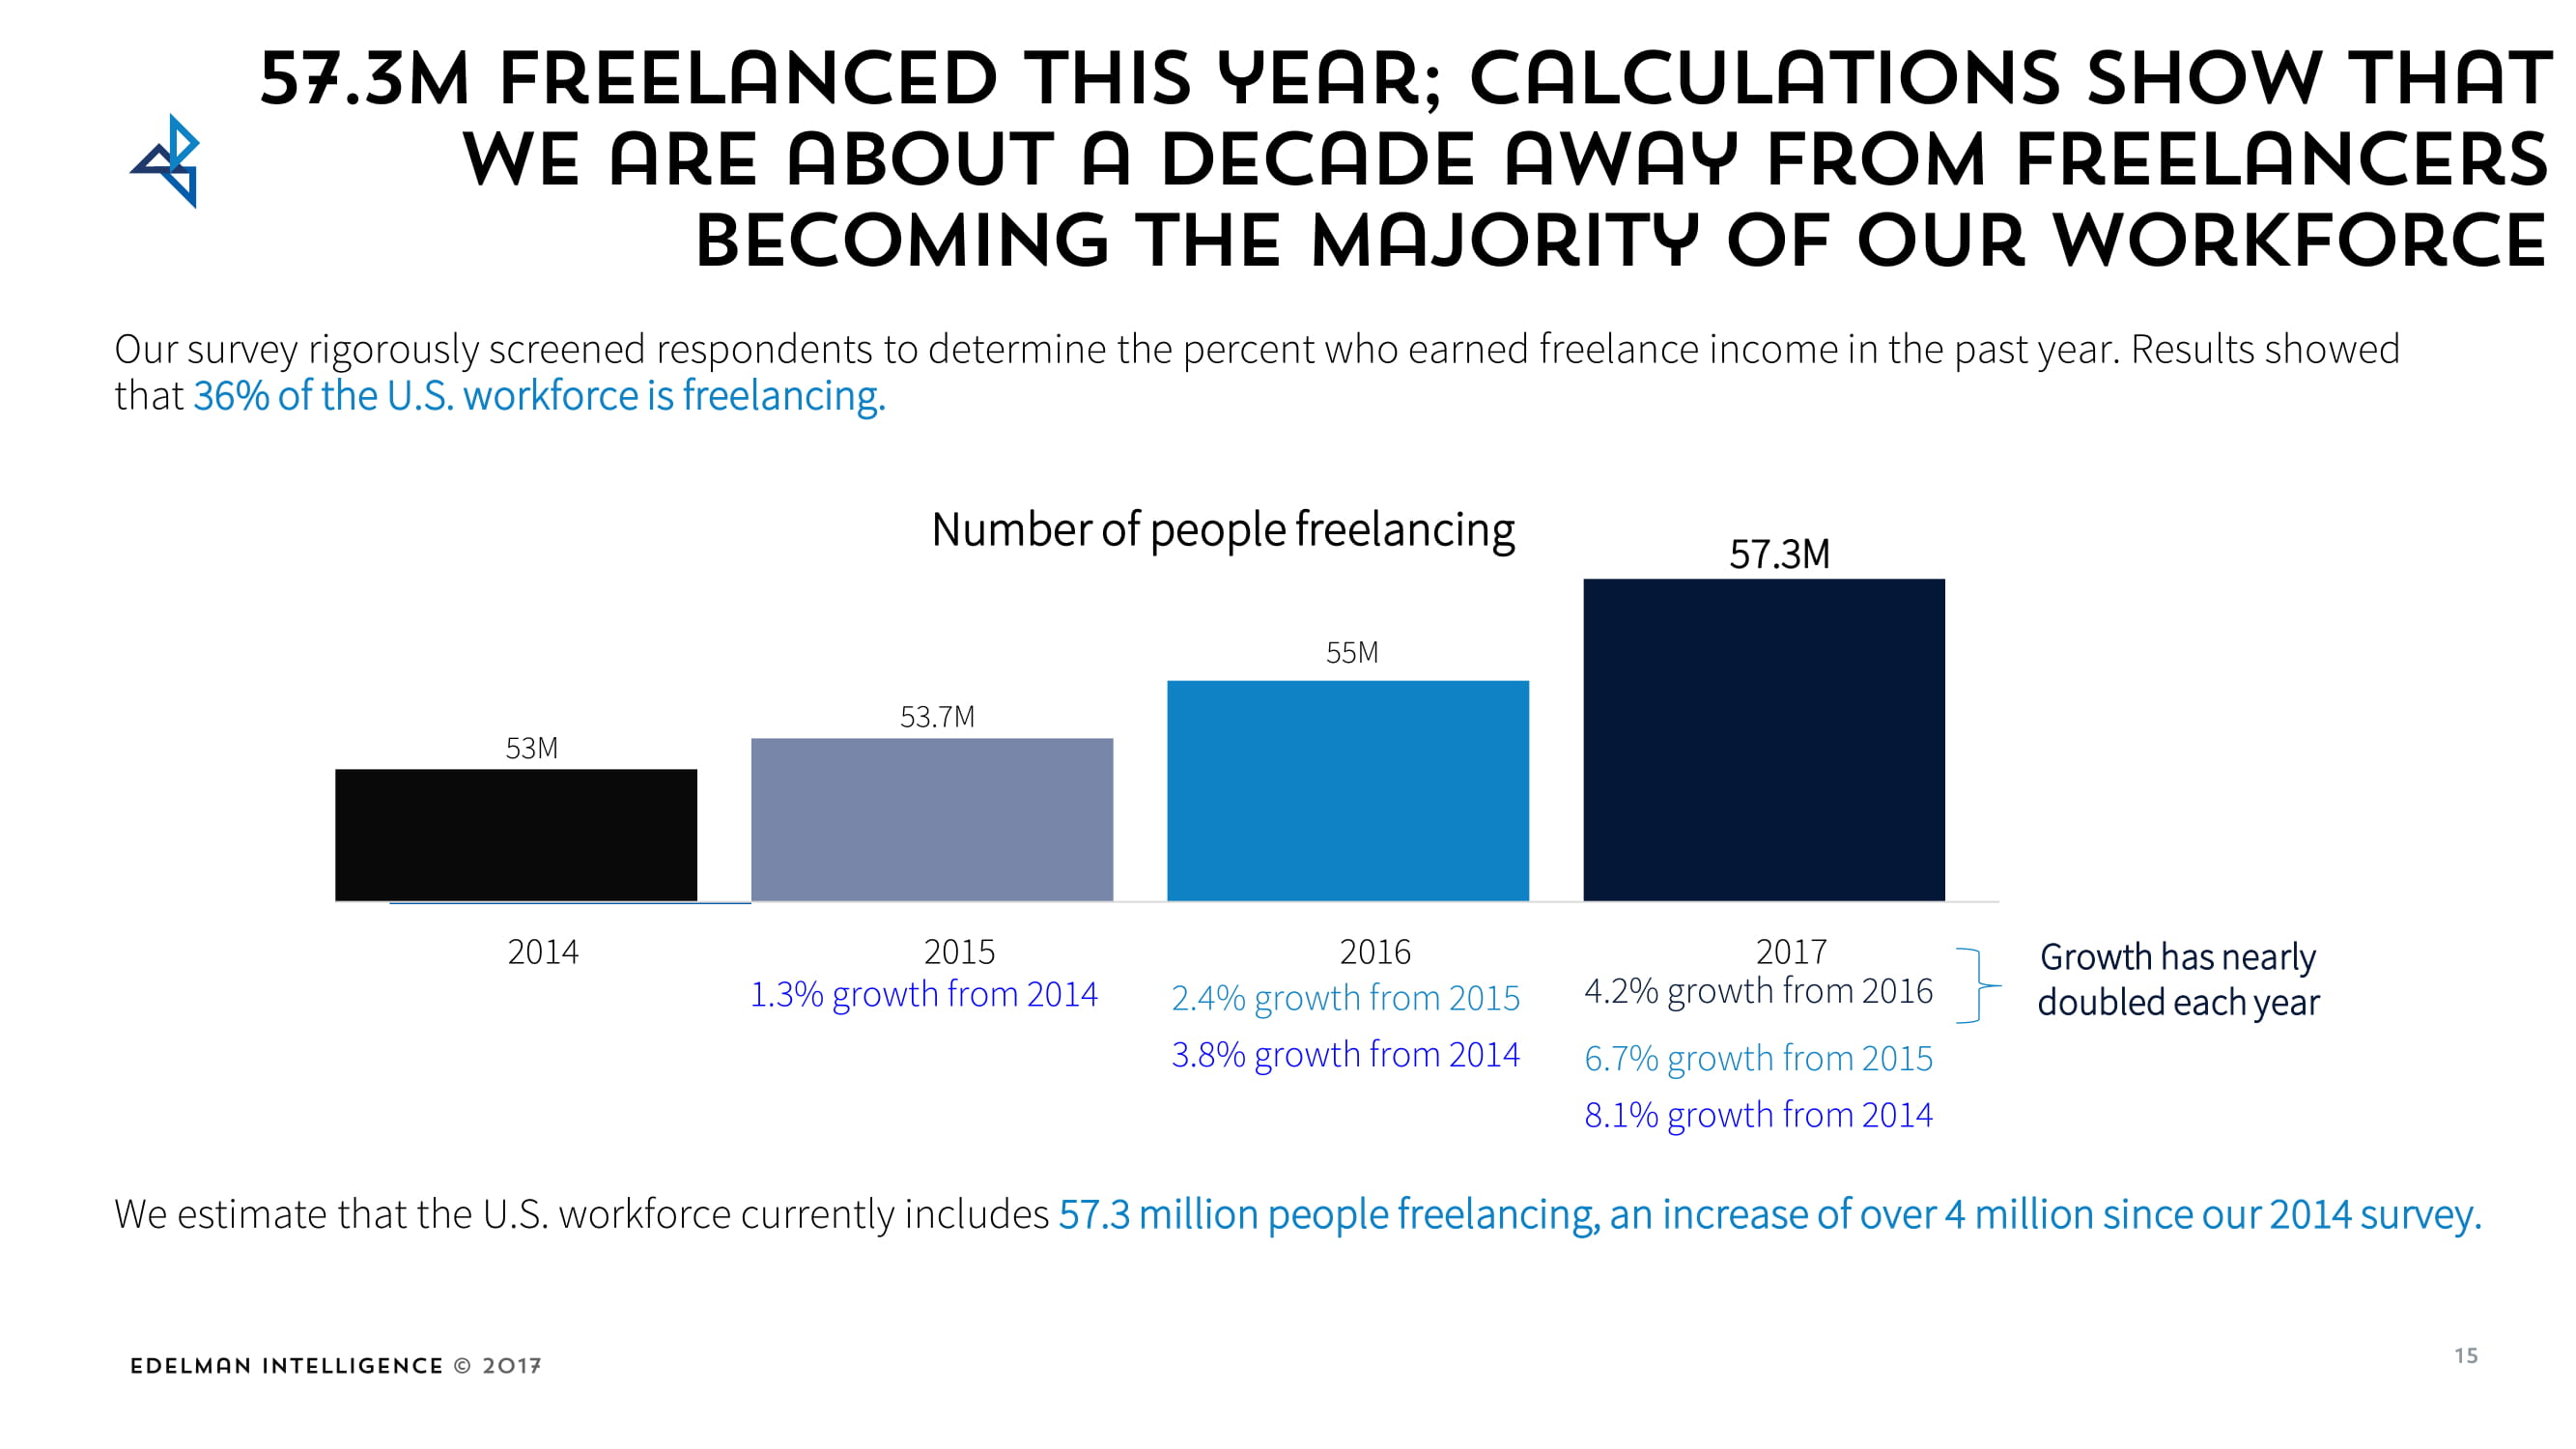 57.3 million people are already into freelancing